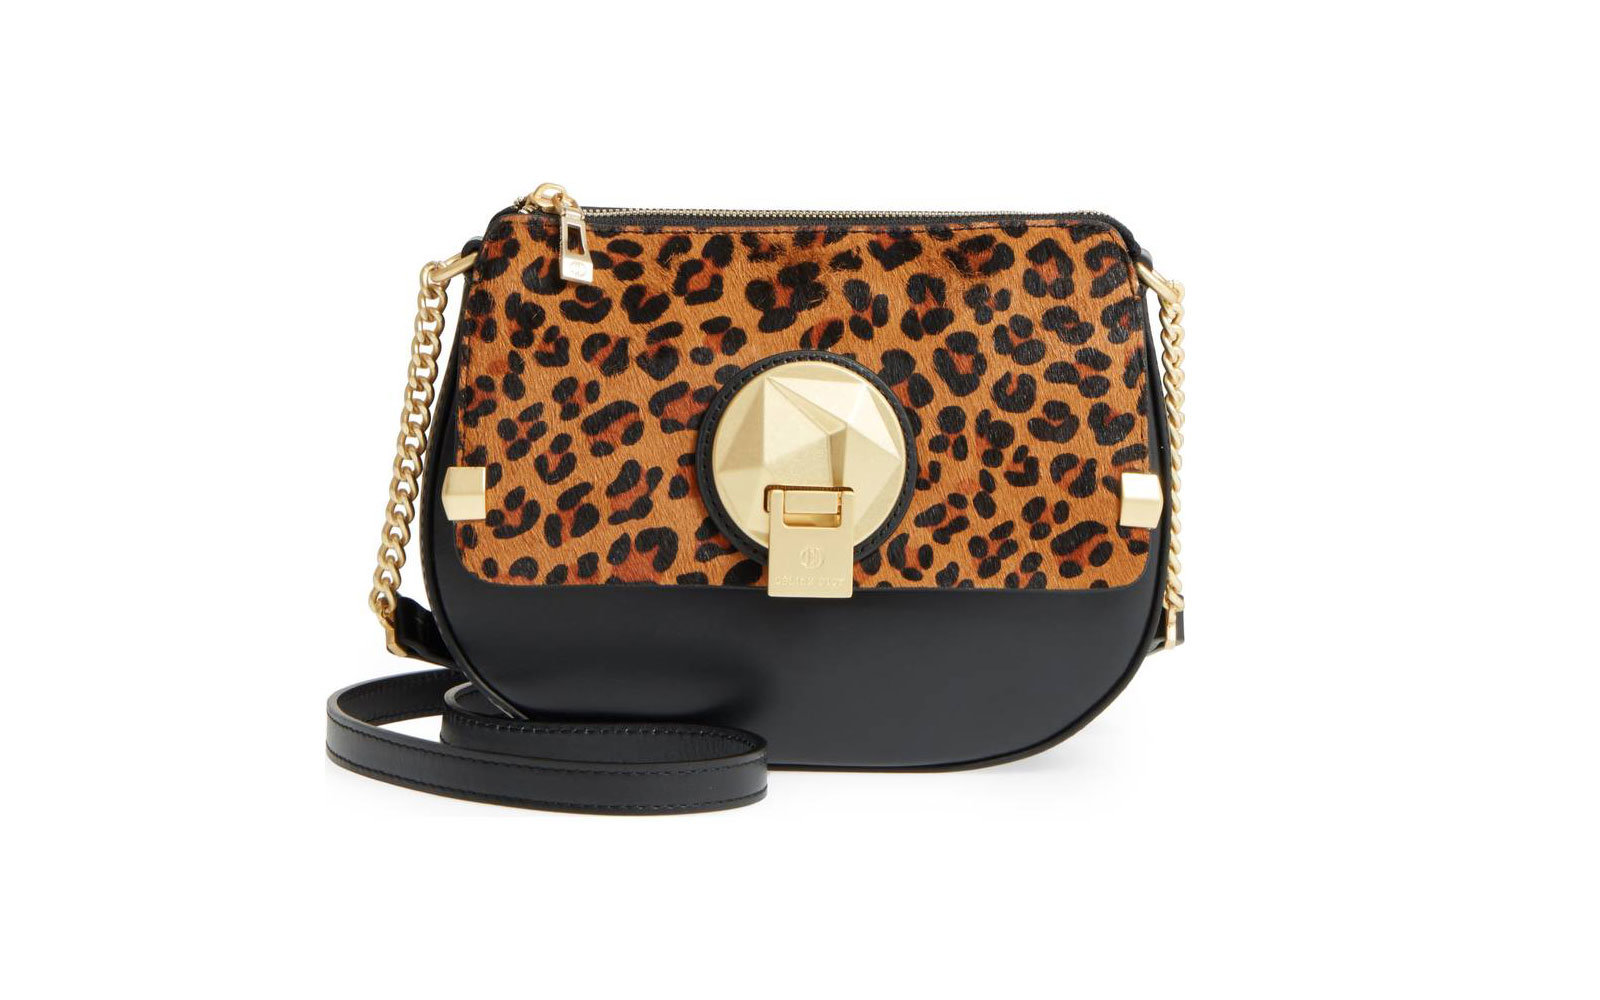 Octave Leather Crossbody Bag in Leopard